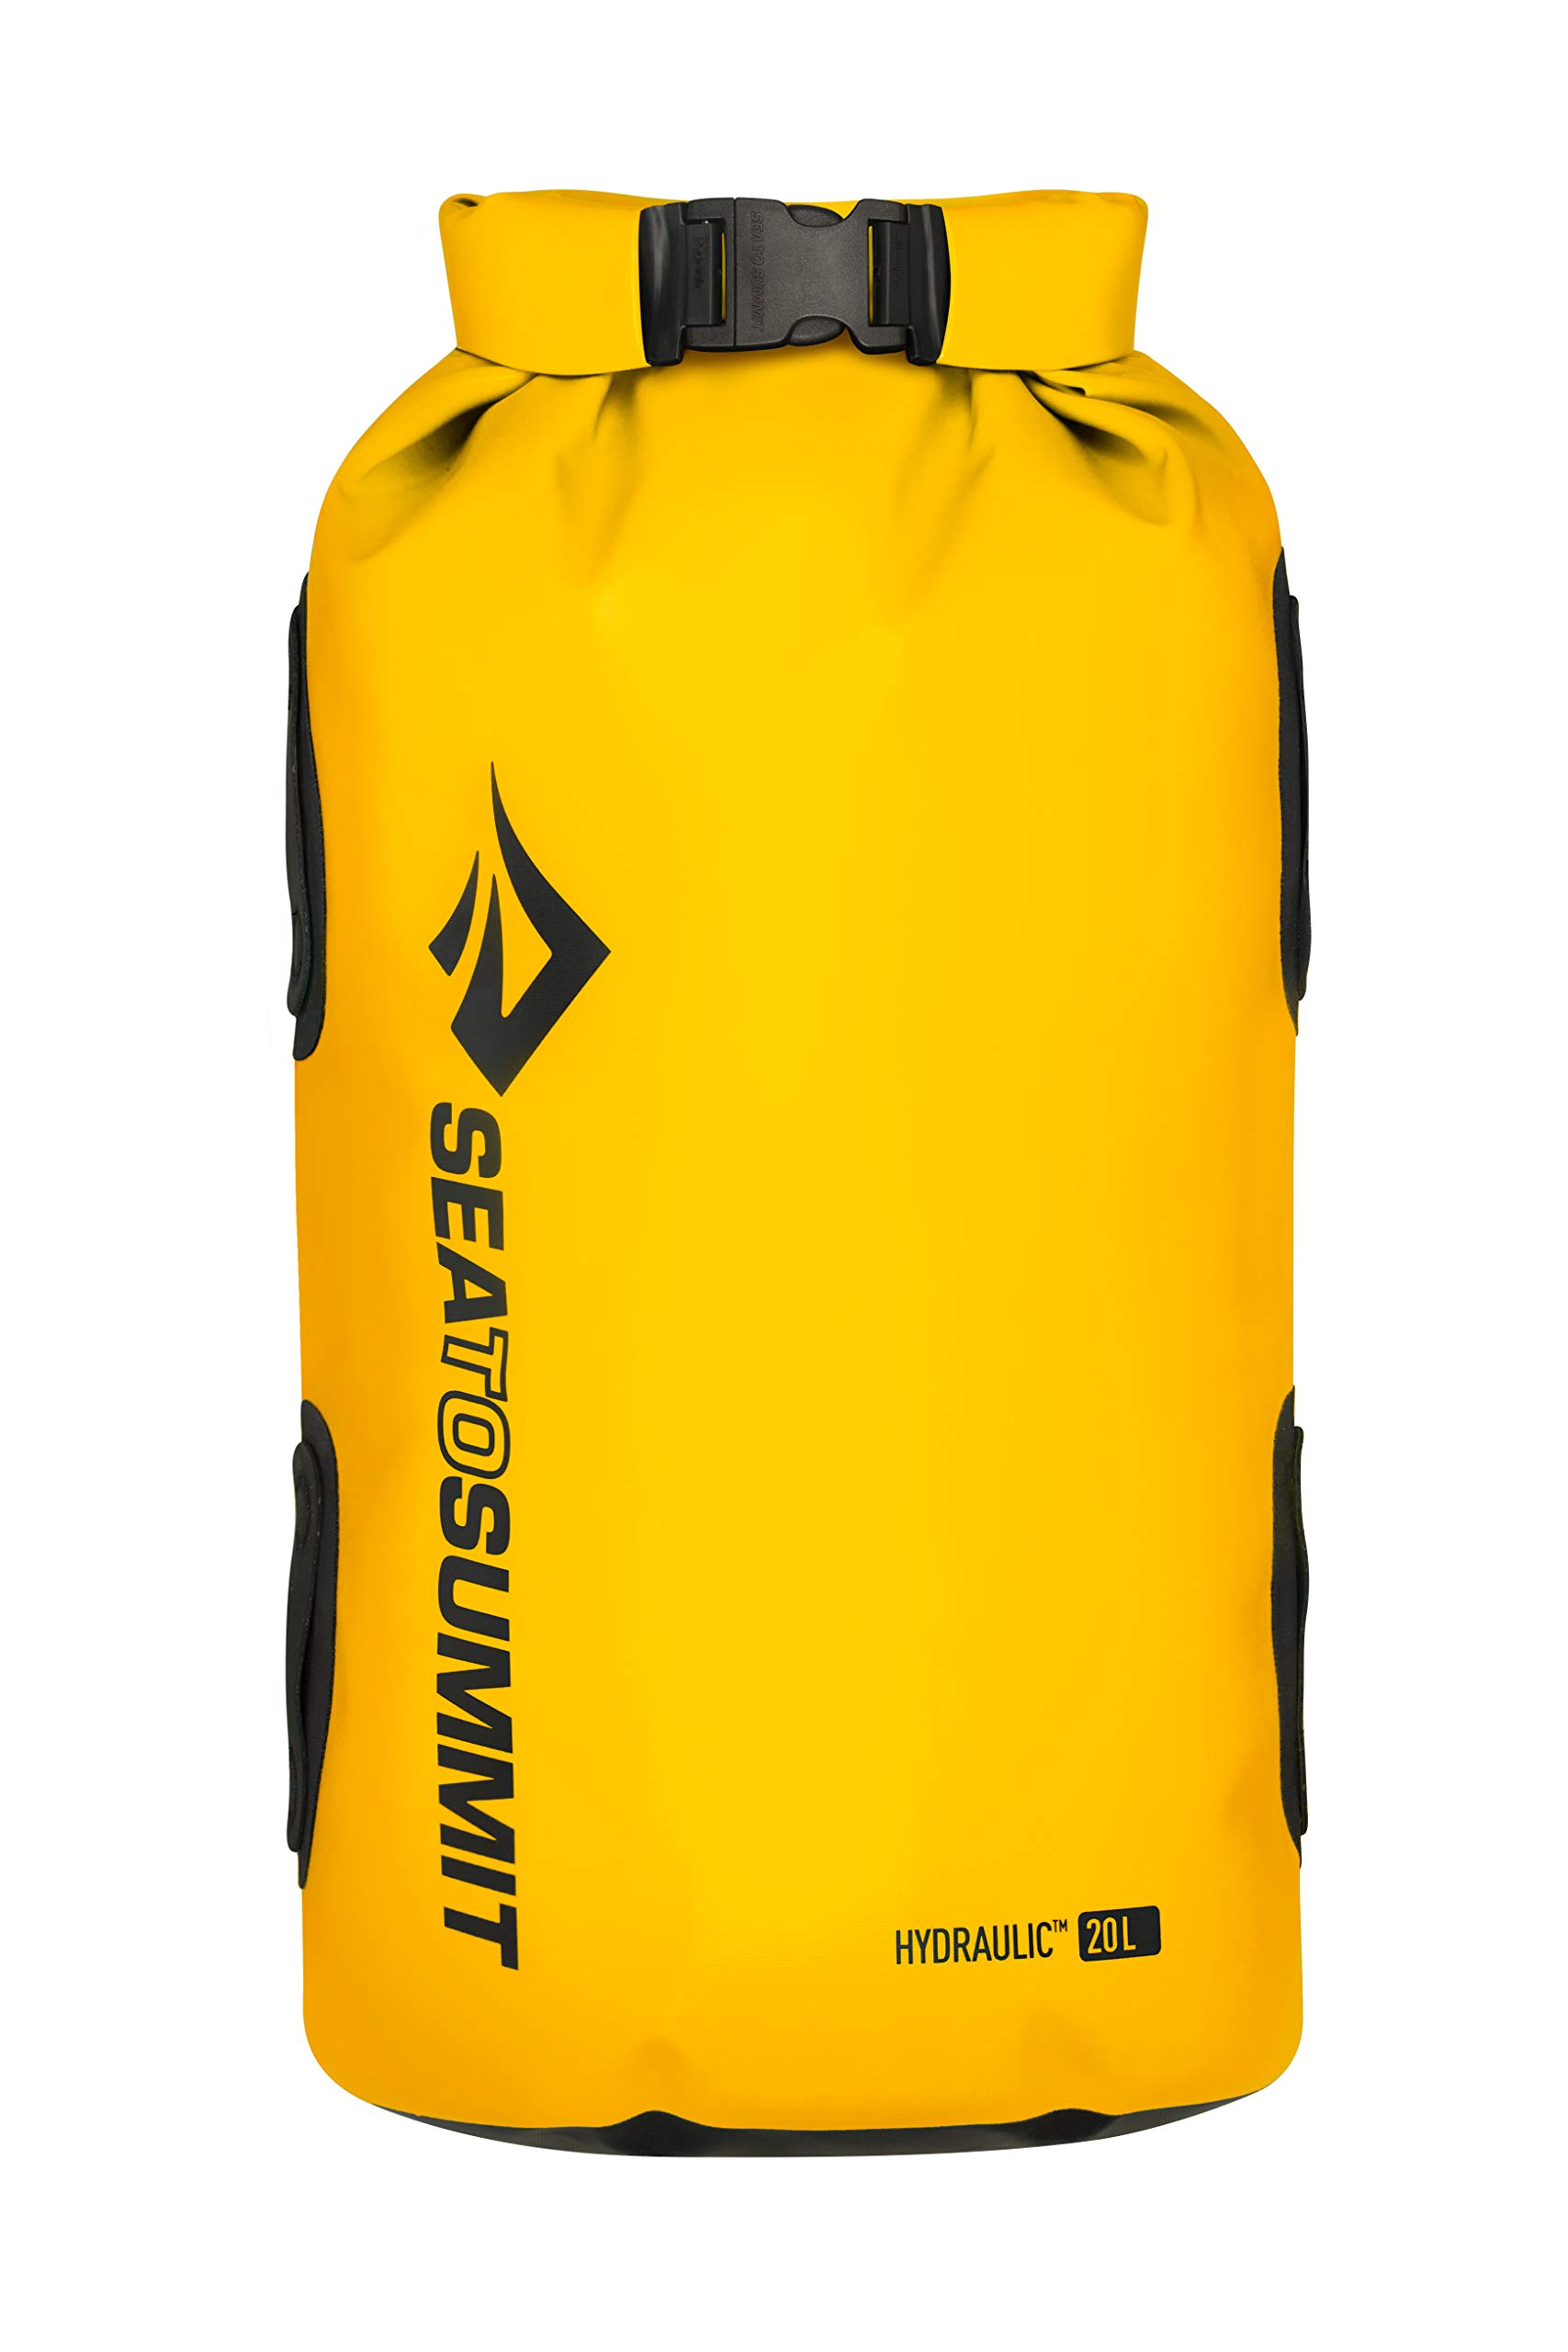 Sea to Summit Hydraulic Dry Bag - Yellow 20L by Sea to Summit